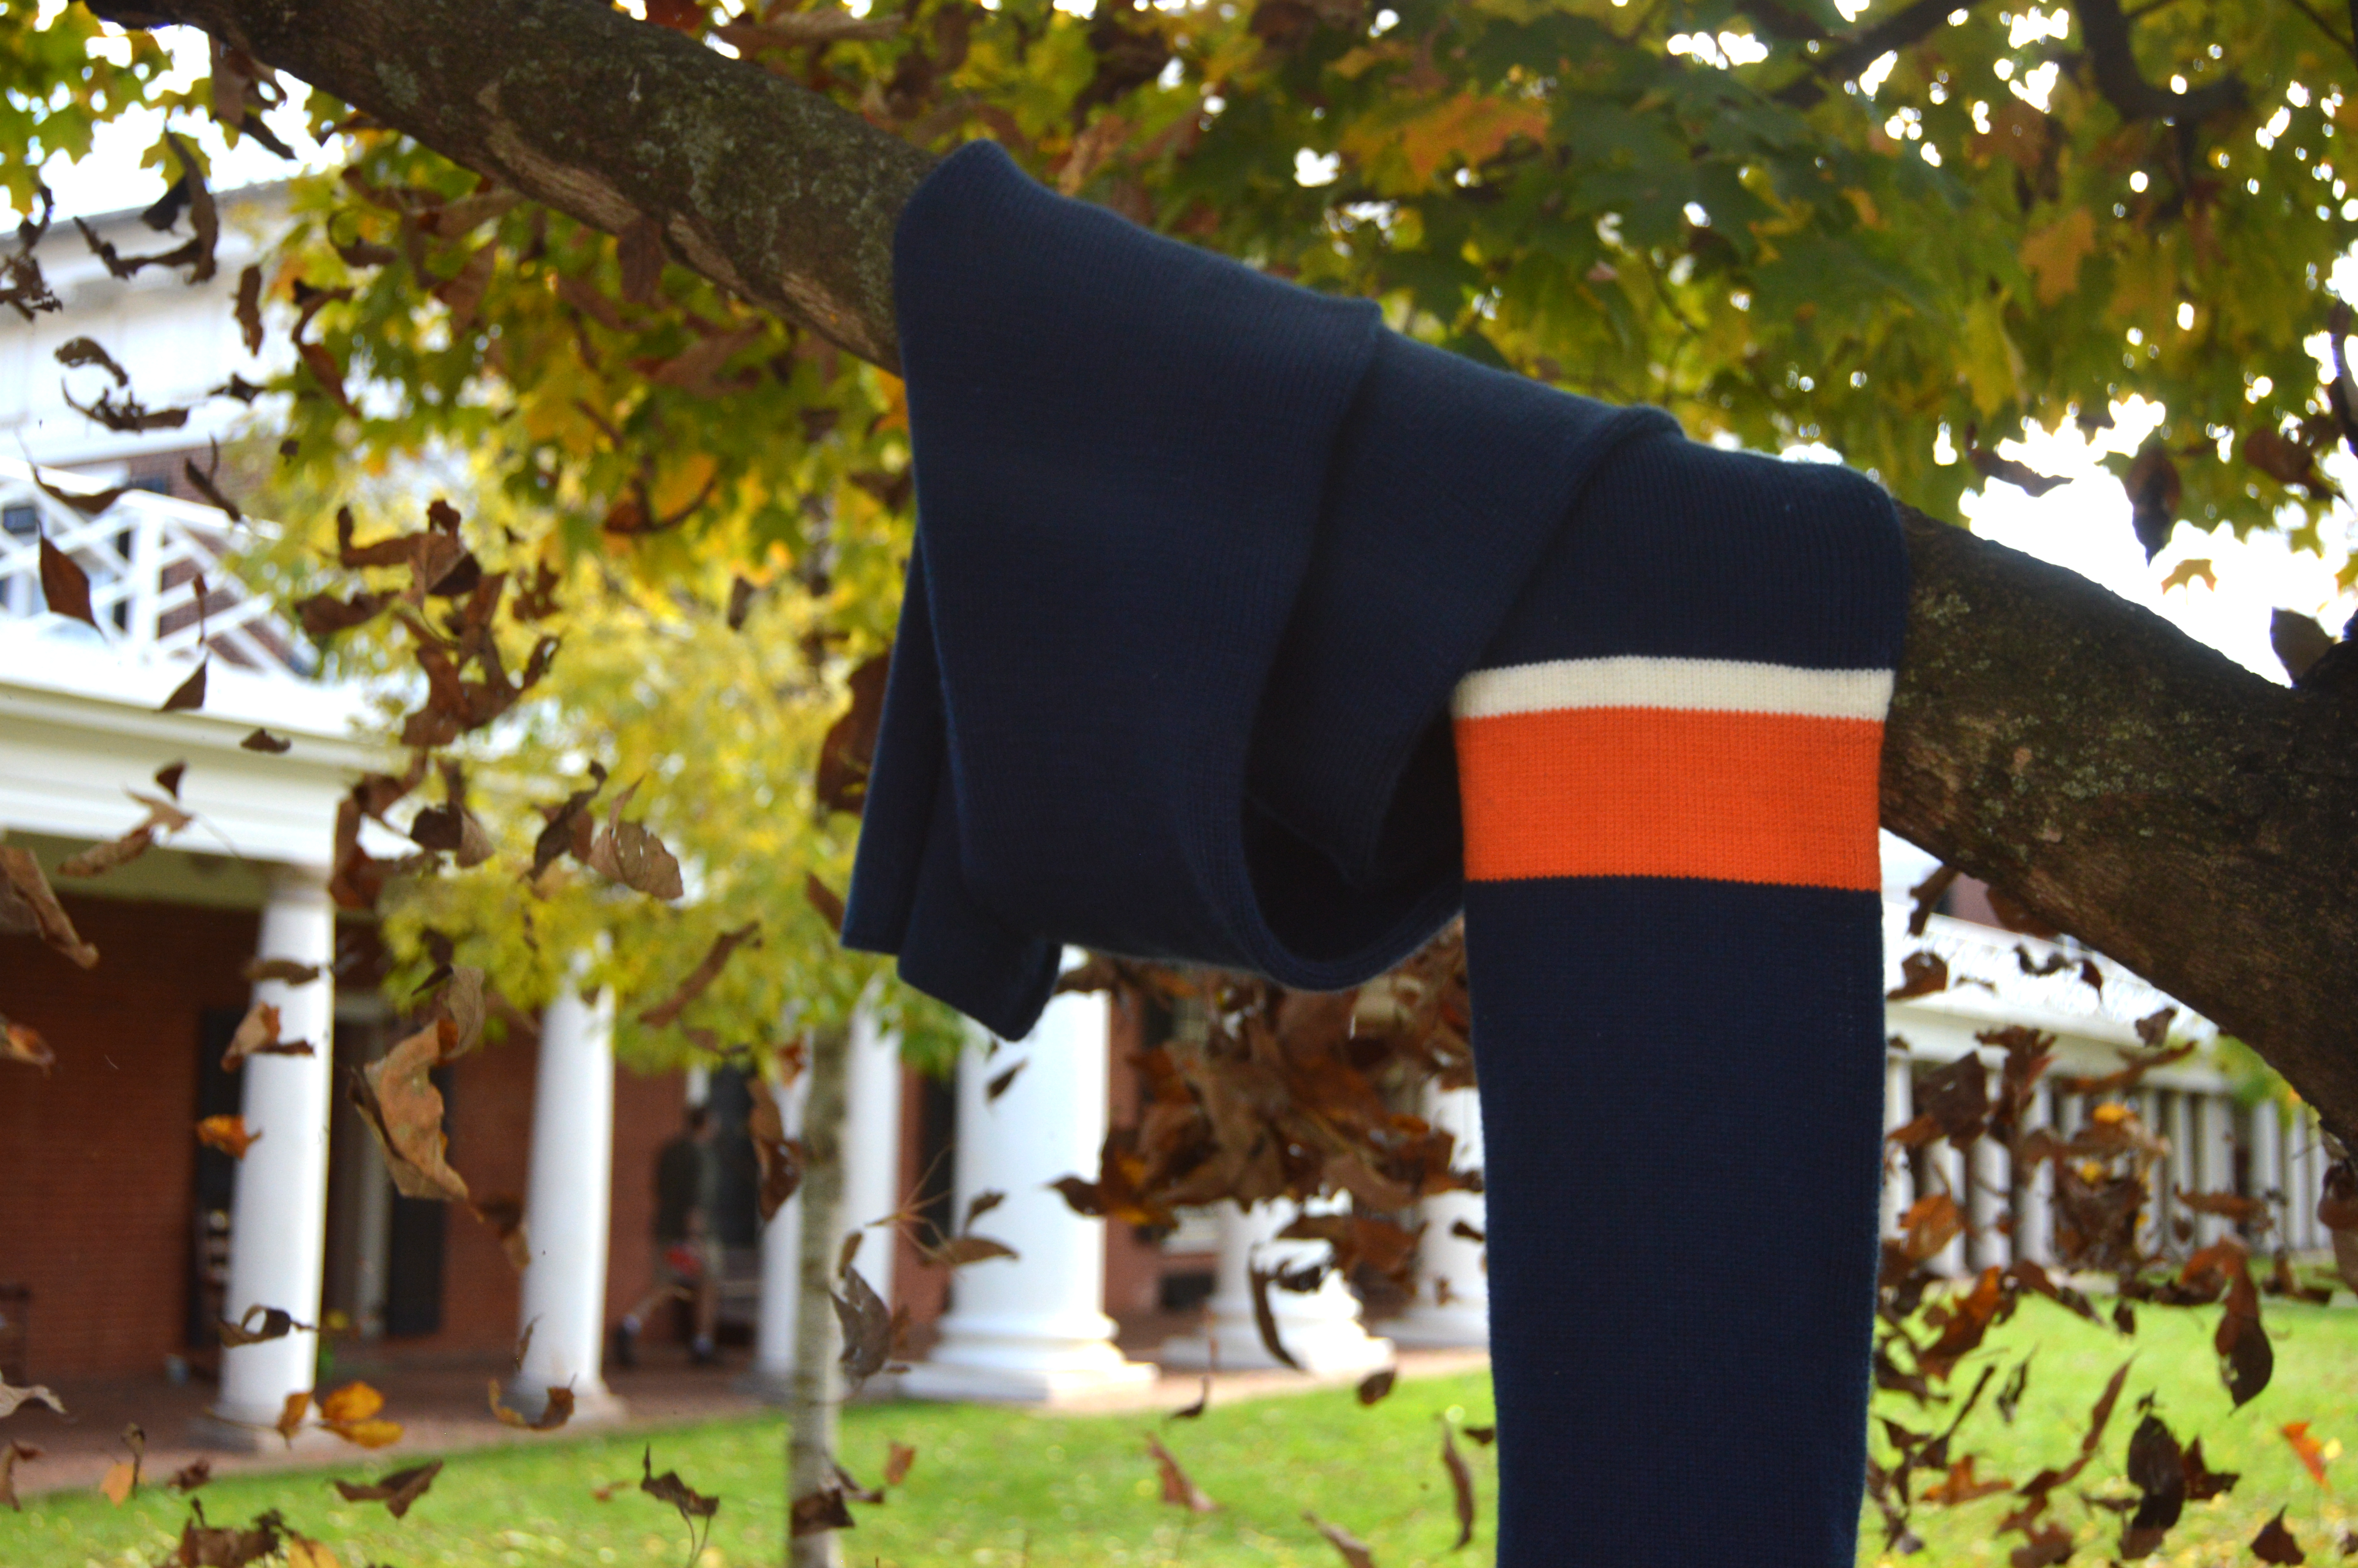 Classic scarf hanging from tree